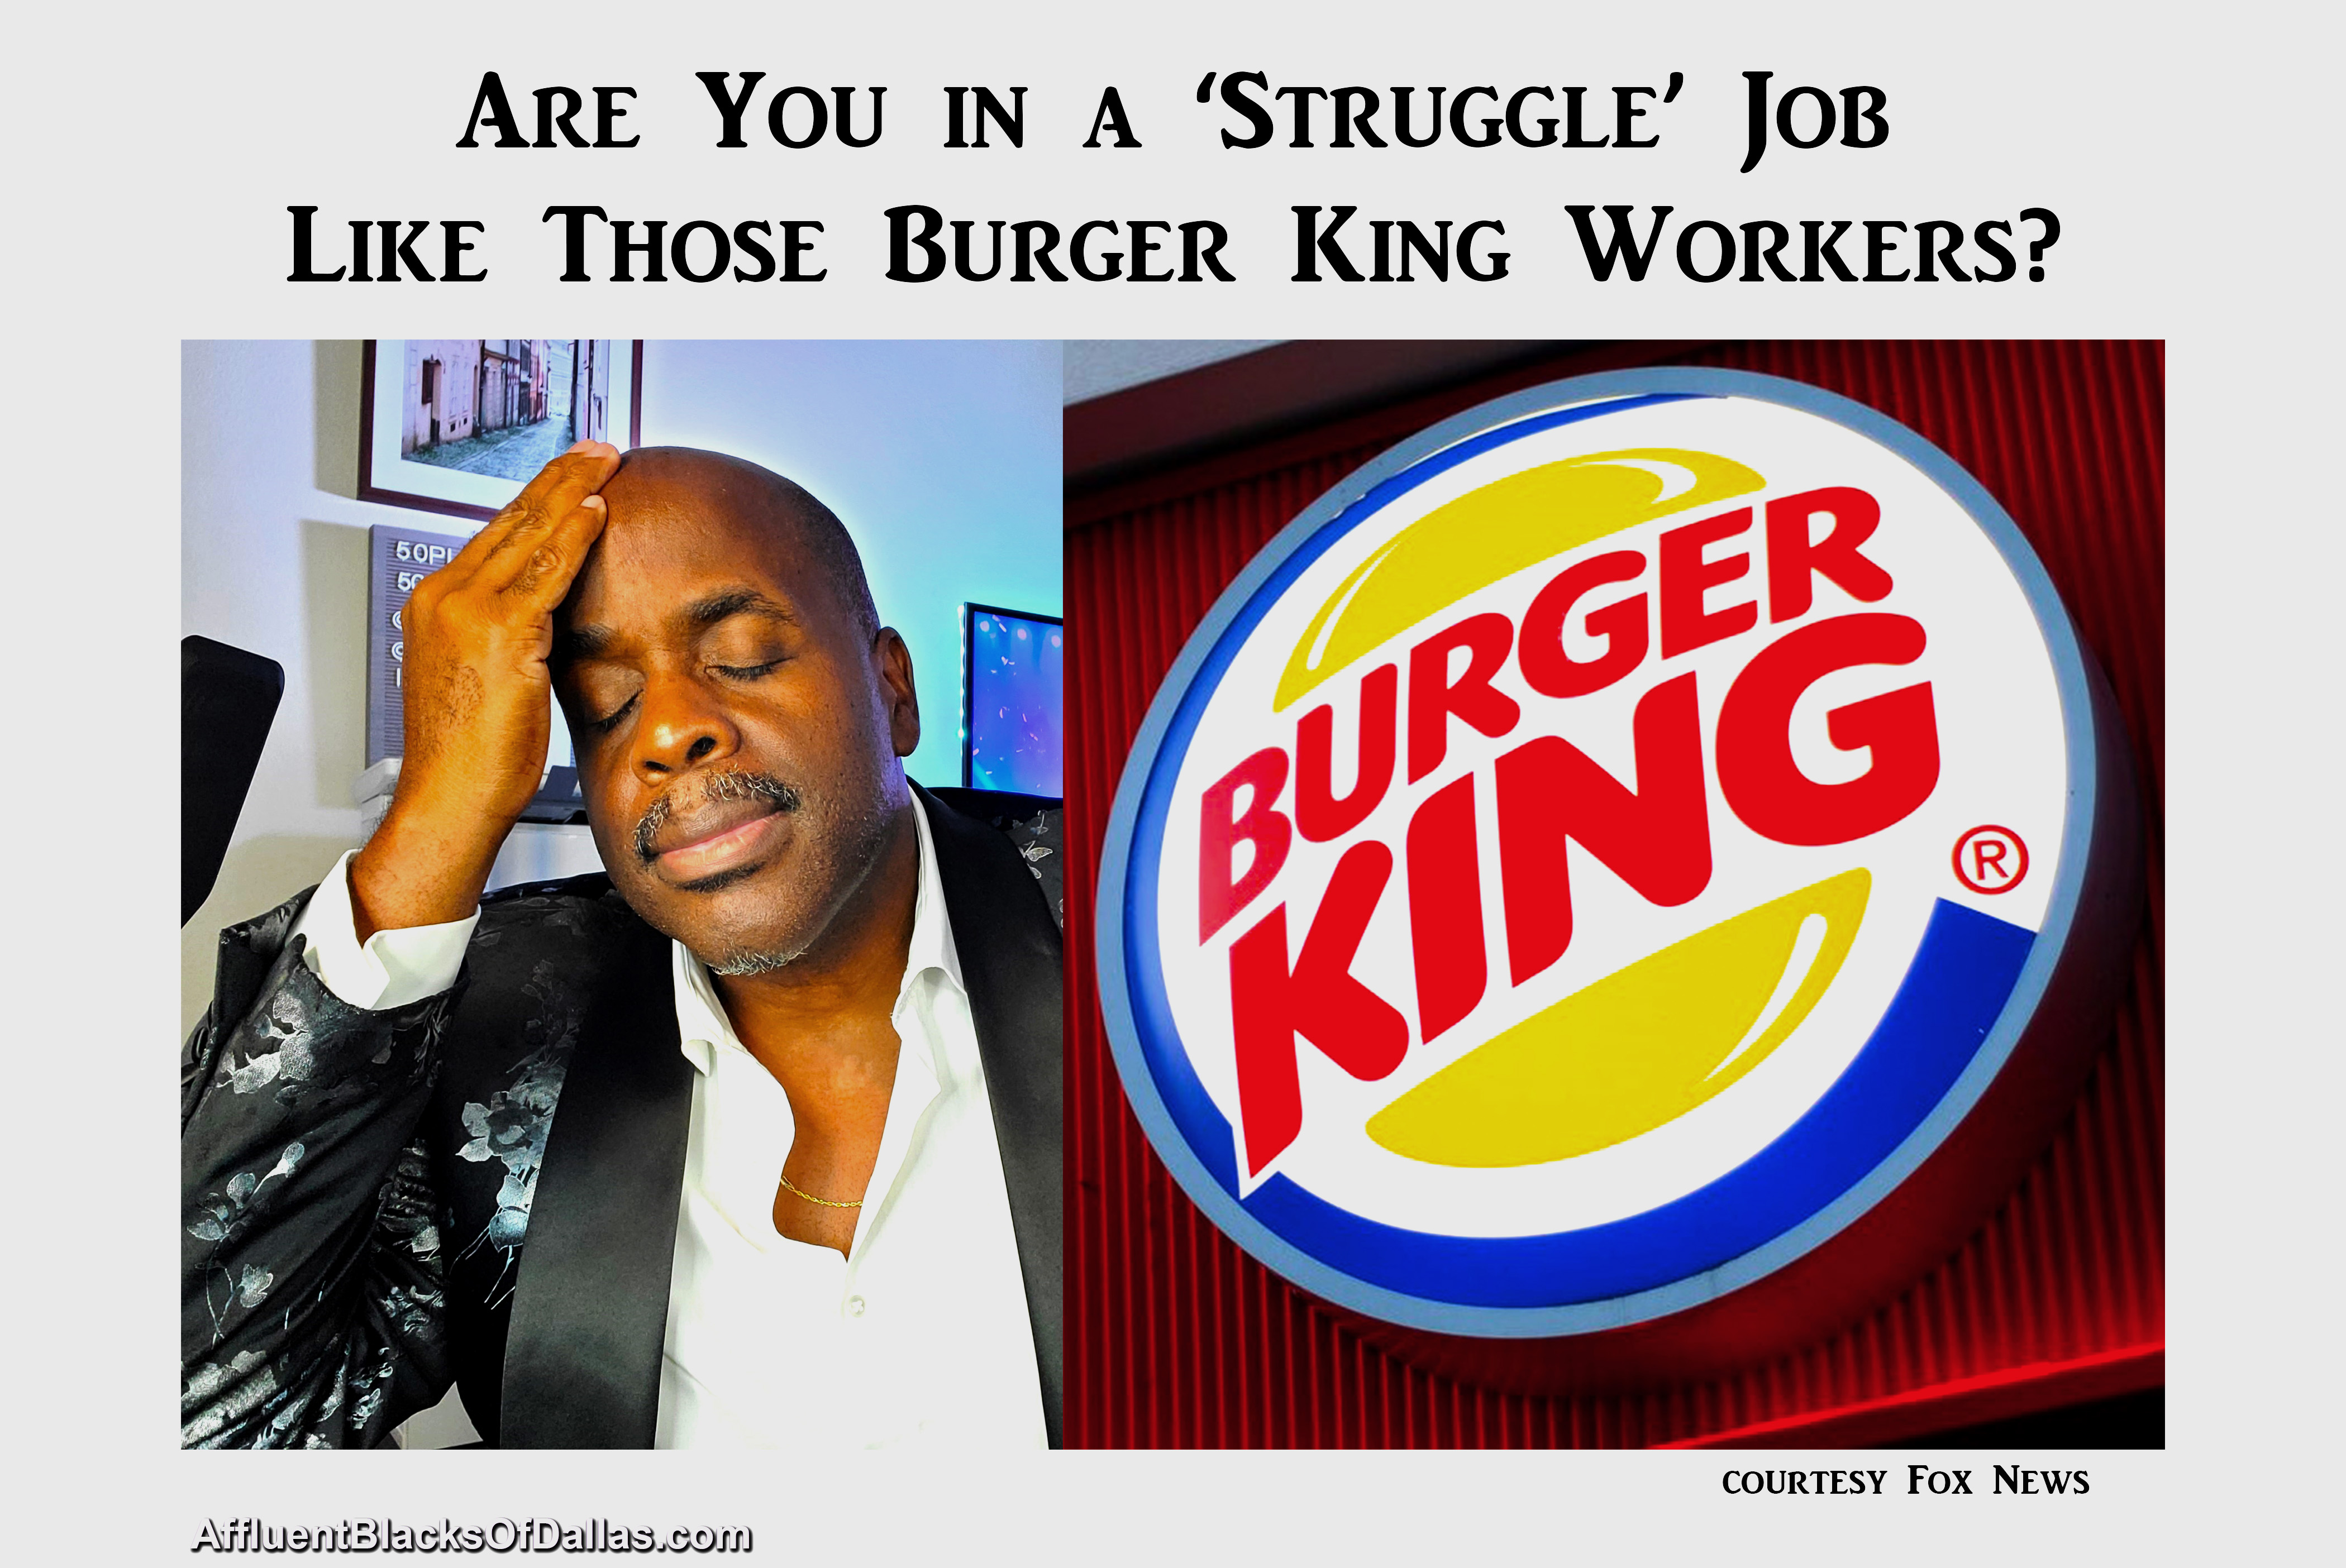 Entire Burger King Staff Quit Their Slave 'Struggle' Jobs. Are YOU Next?